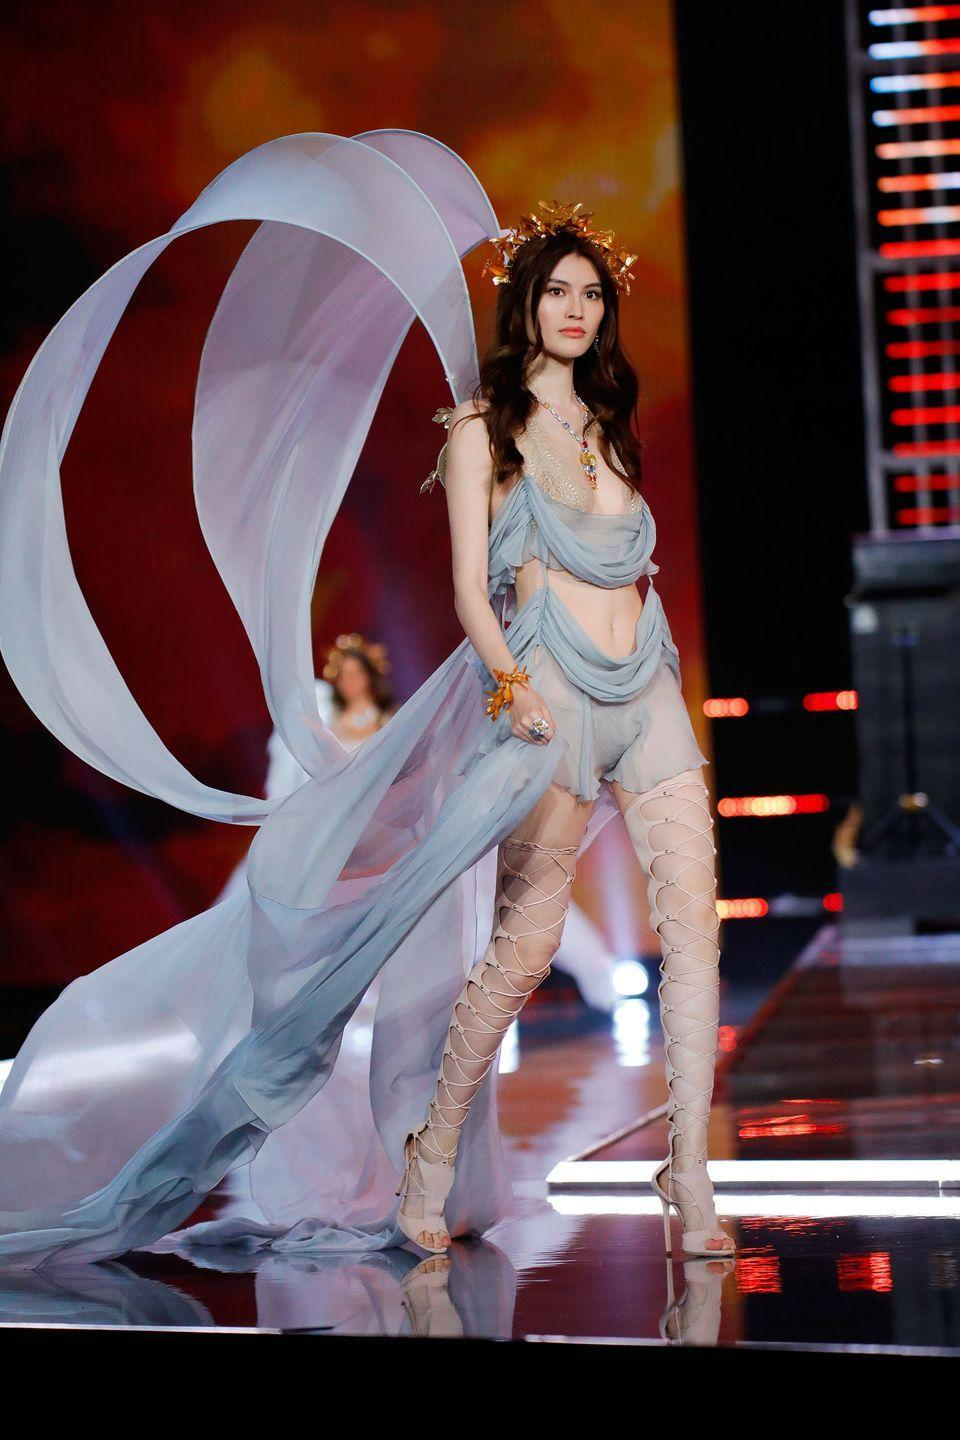 "<p>For the Chinese supermodel, her runway life began when she <a href=""https://www.bustle.com/articles/124045-who-is-sui-he-the-asian-victorias-secret-model-everyone-needs-to-know-photos"" rel=""nofollow noopener"" target=""_blank"" data-ylk=""slk:entered a modeling competition"" class=""link rapid-noclick-resp"">entered a modeling competition</a> in China at 17 years old. Although she had no prior training, she ended up winning the contest. </p>"